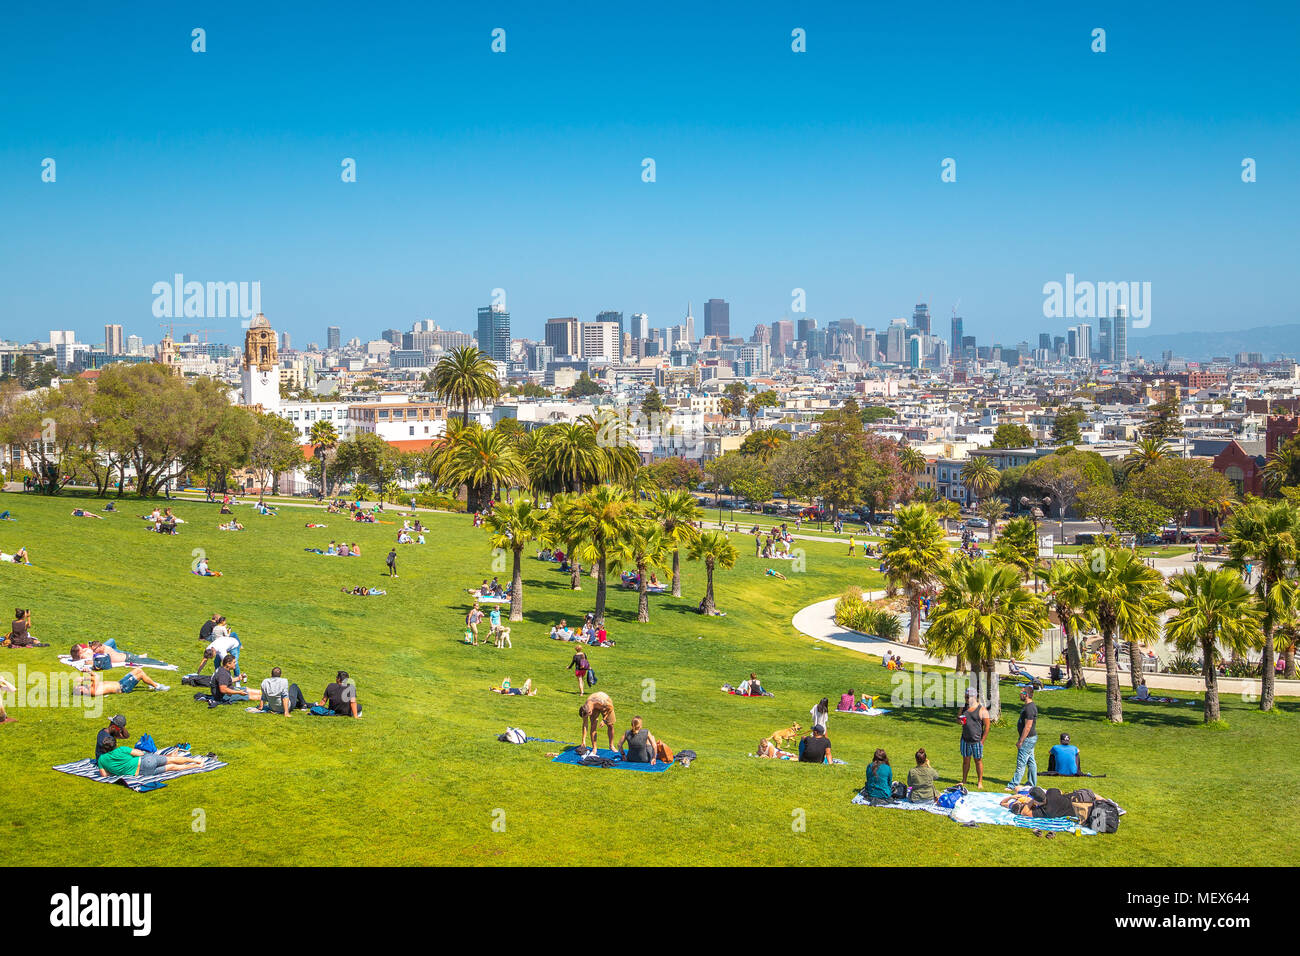 People enjoying the sunny weather on a beautiful day with clear blue skies with the skyline of San Francisco in the background, California, USA - Stock Image